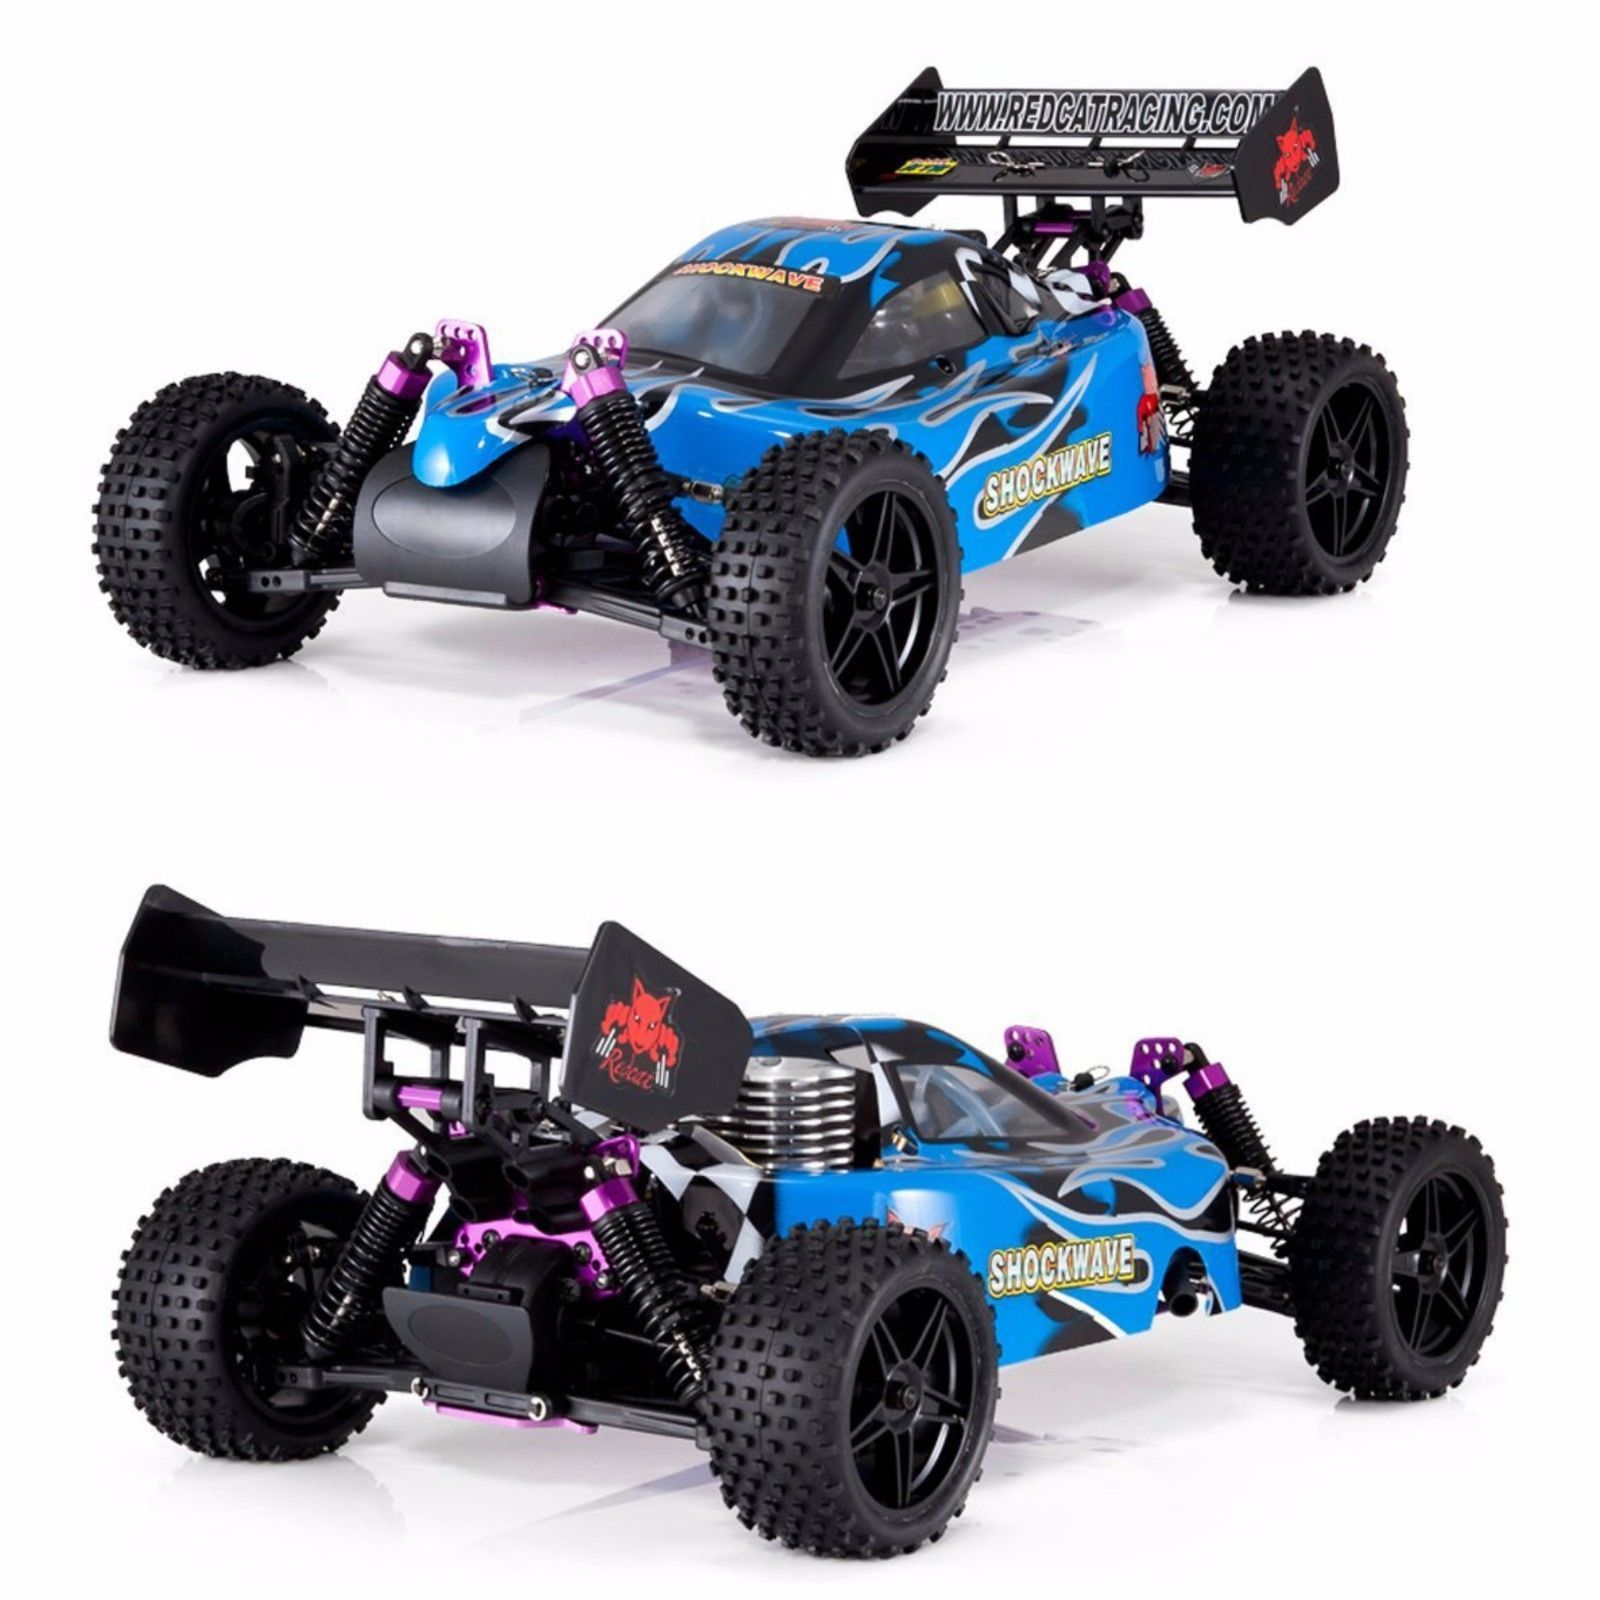 Rc Trucks Gas Powered Remote Control Car For Boys Gas Powered Rc Trucks 4x4 New Ebay Gas Powered Rc Trucks Remote Control Cars Rc Trucks